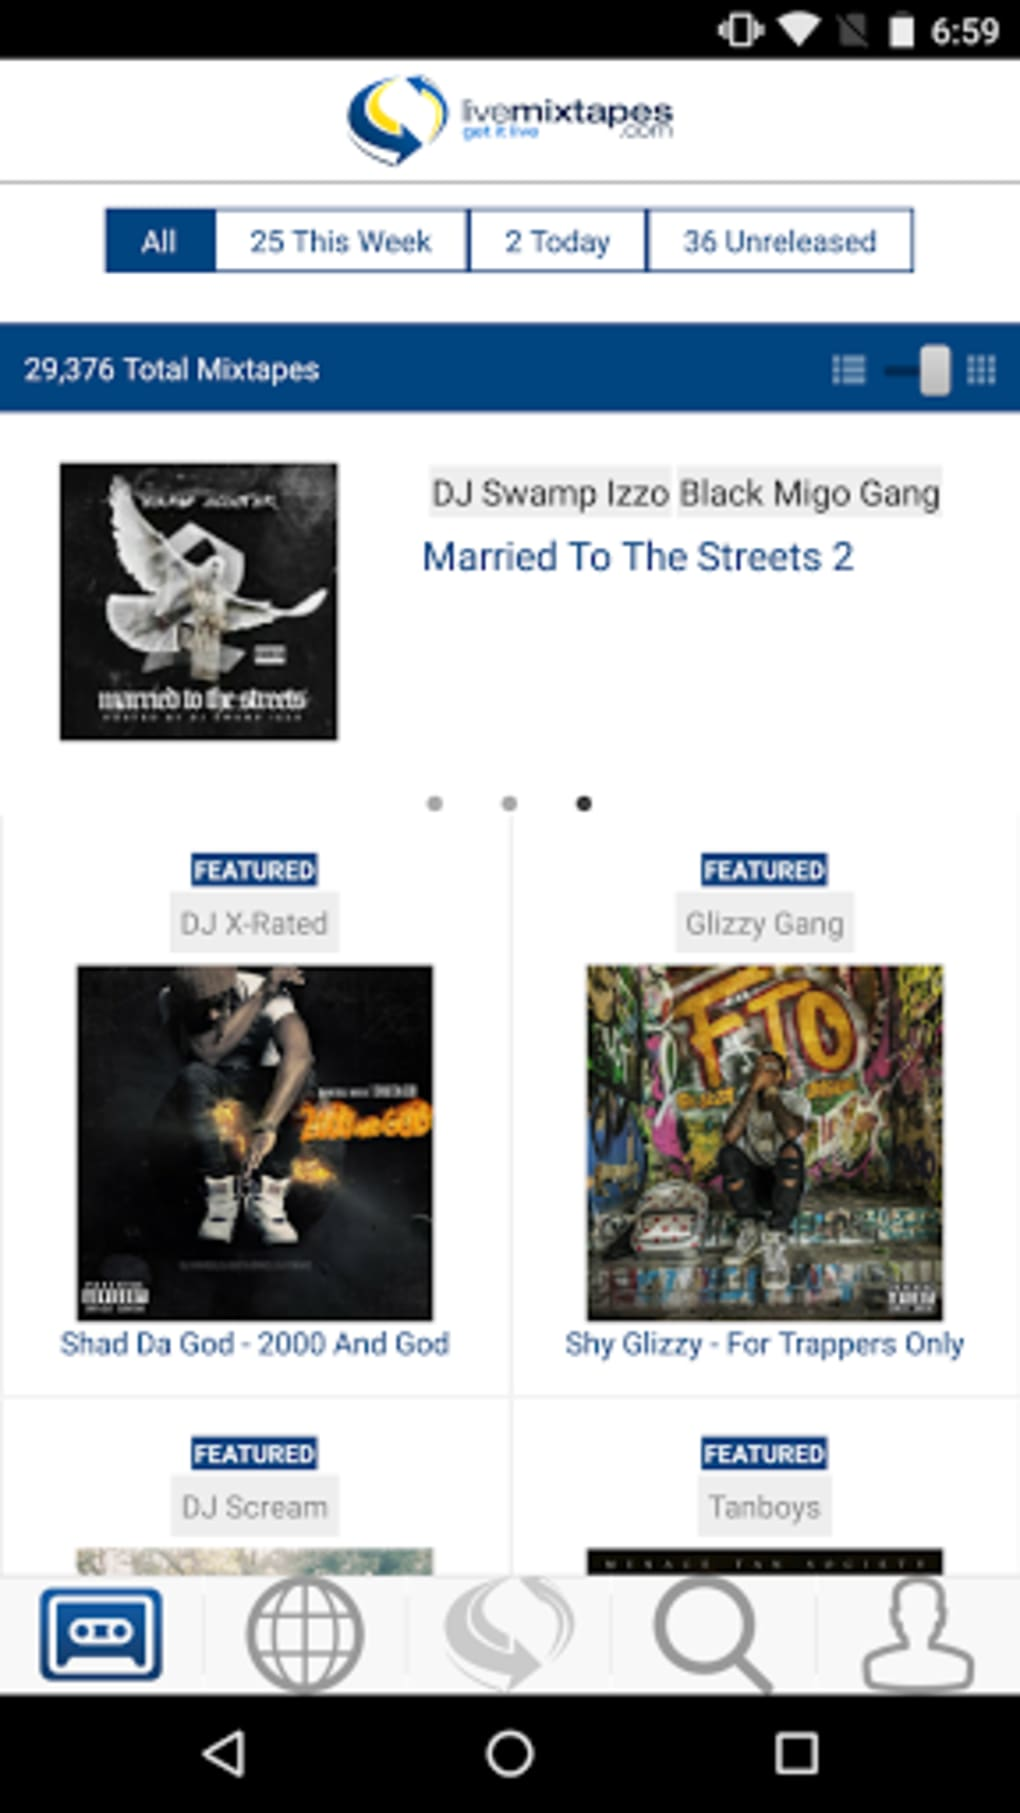 LiveMixtapes for Android - Download